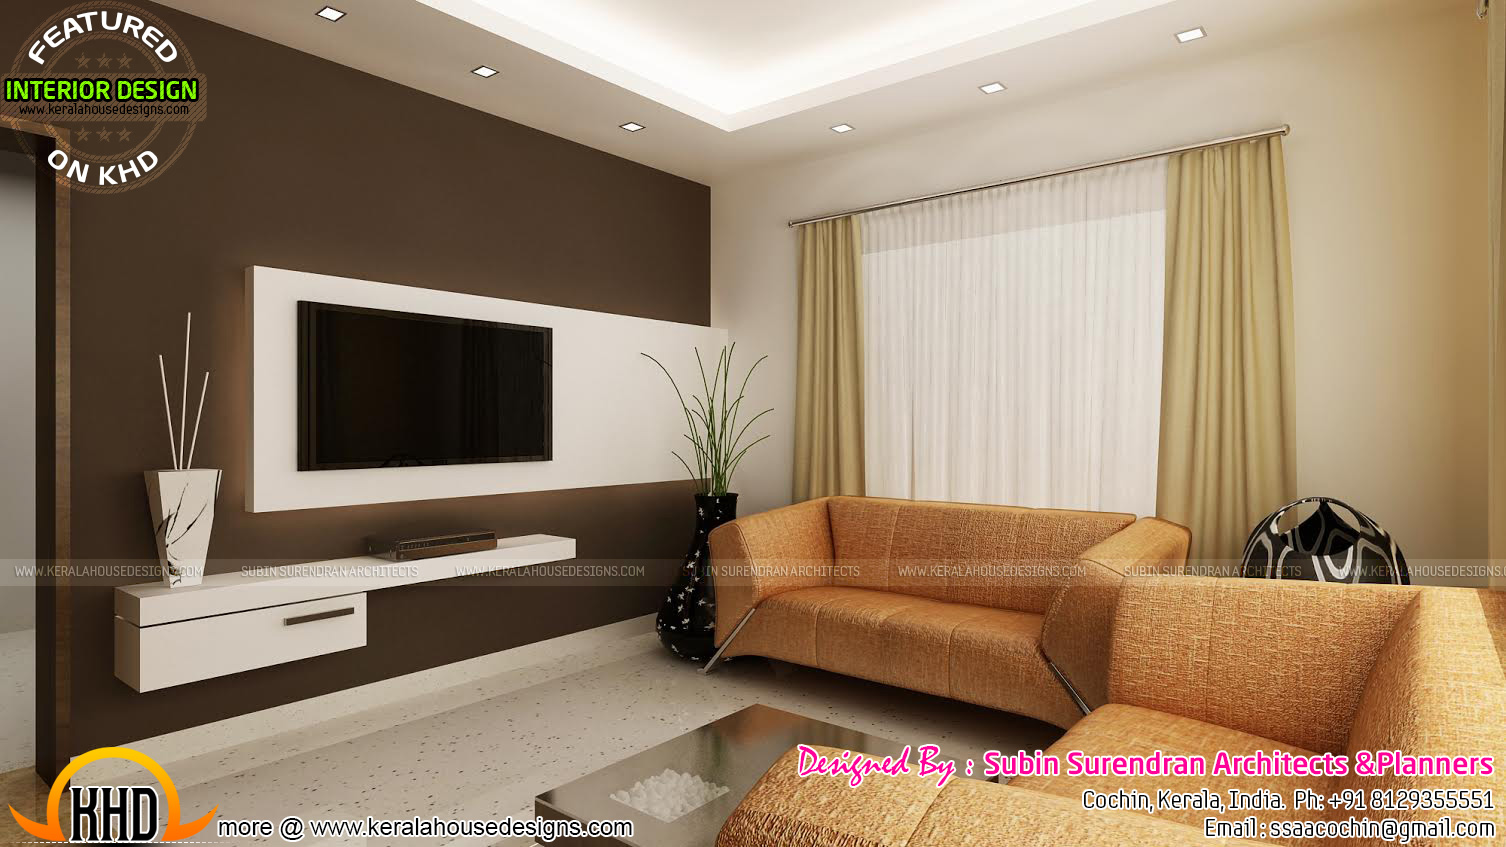 Living rooms modern kitchen interiors in kerala kerala for Interior design styles living room 2015